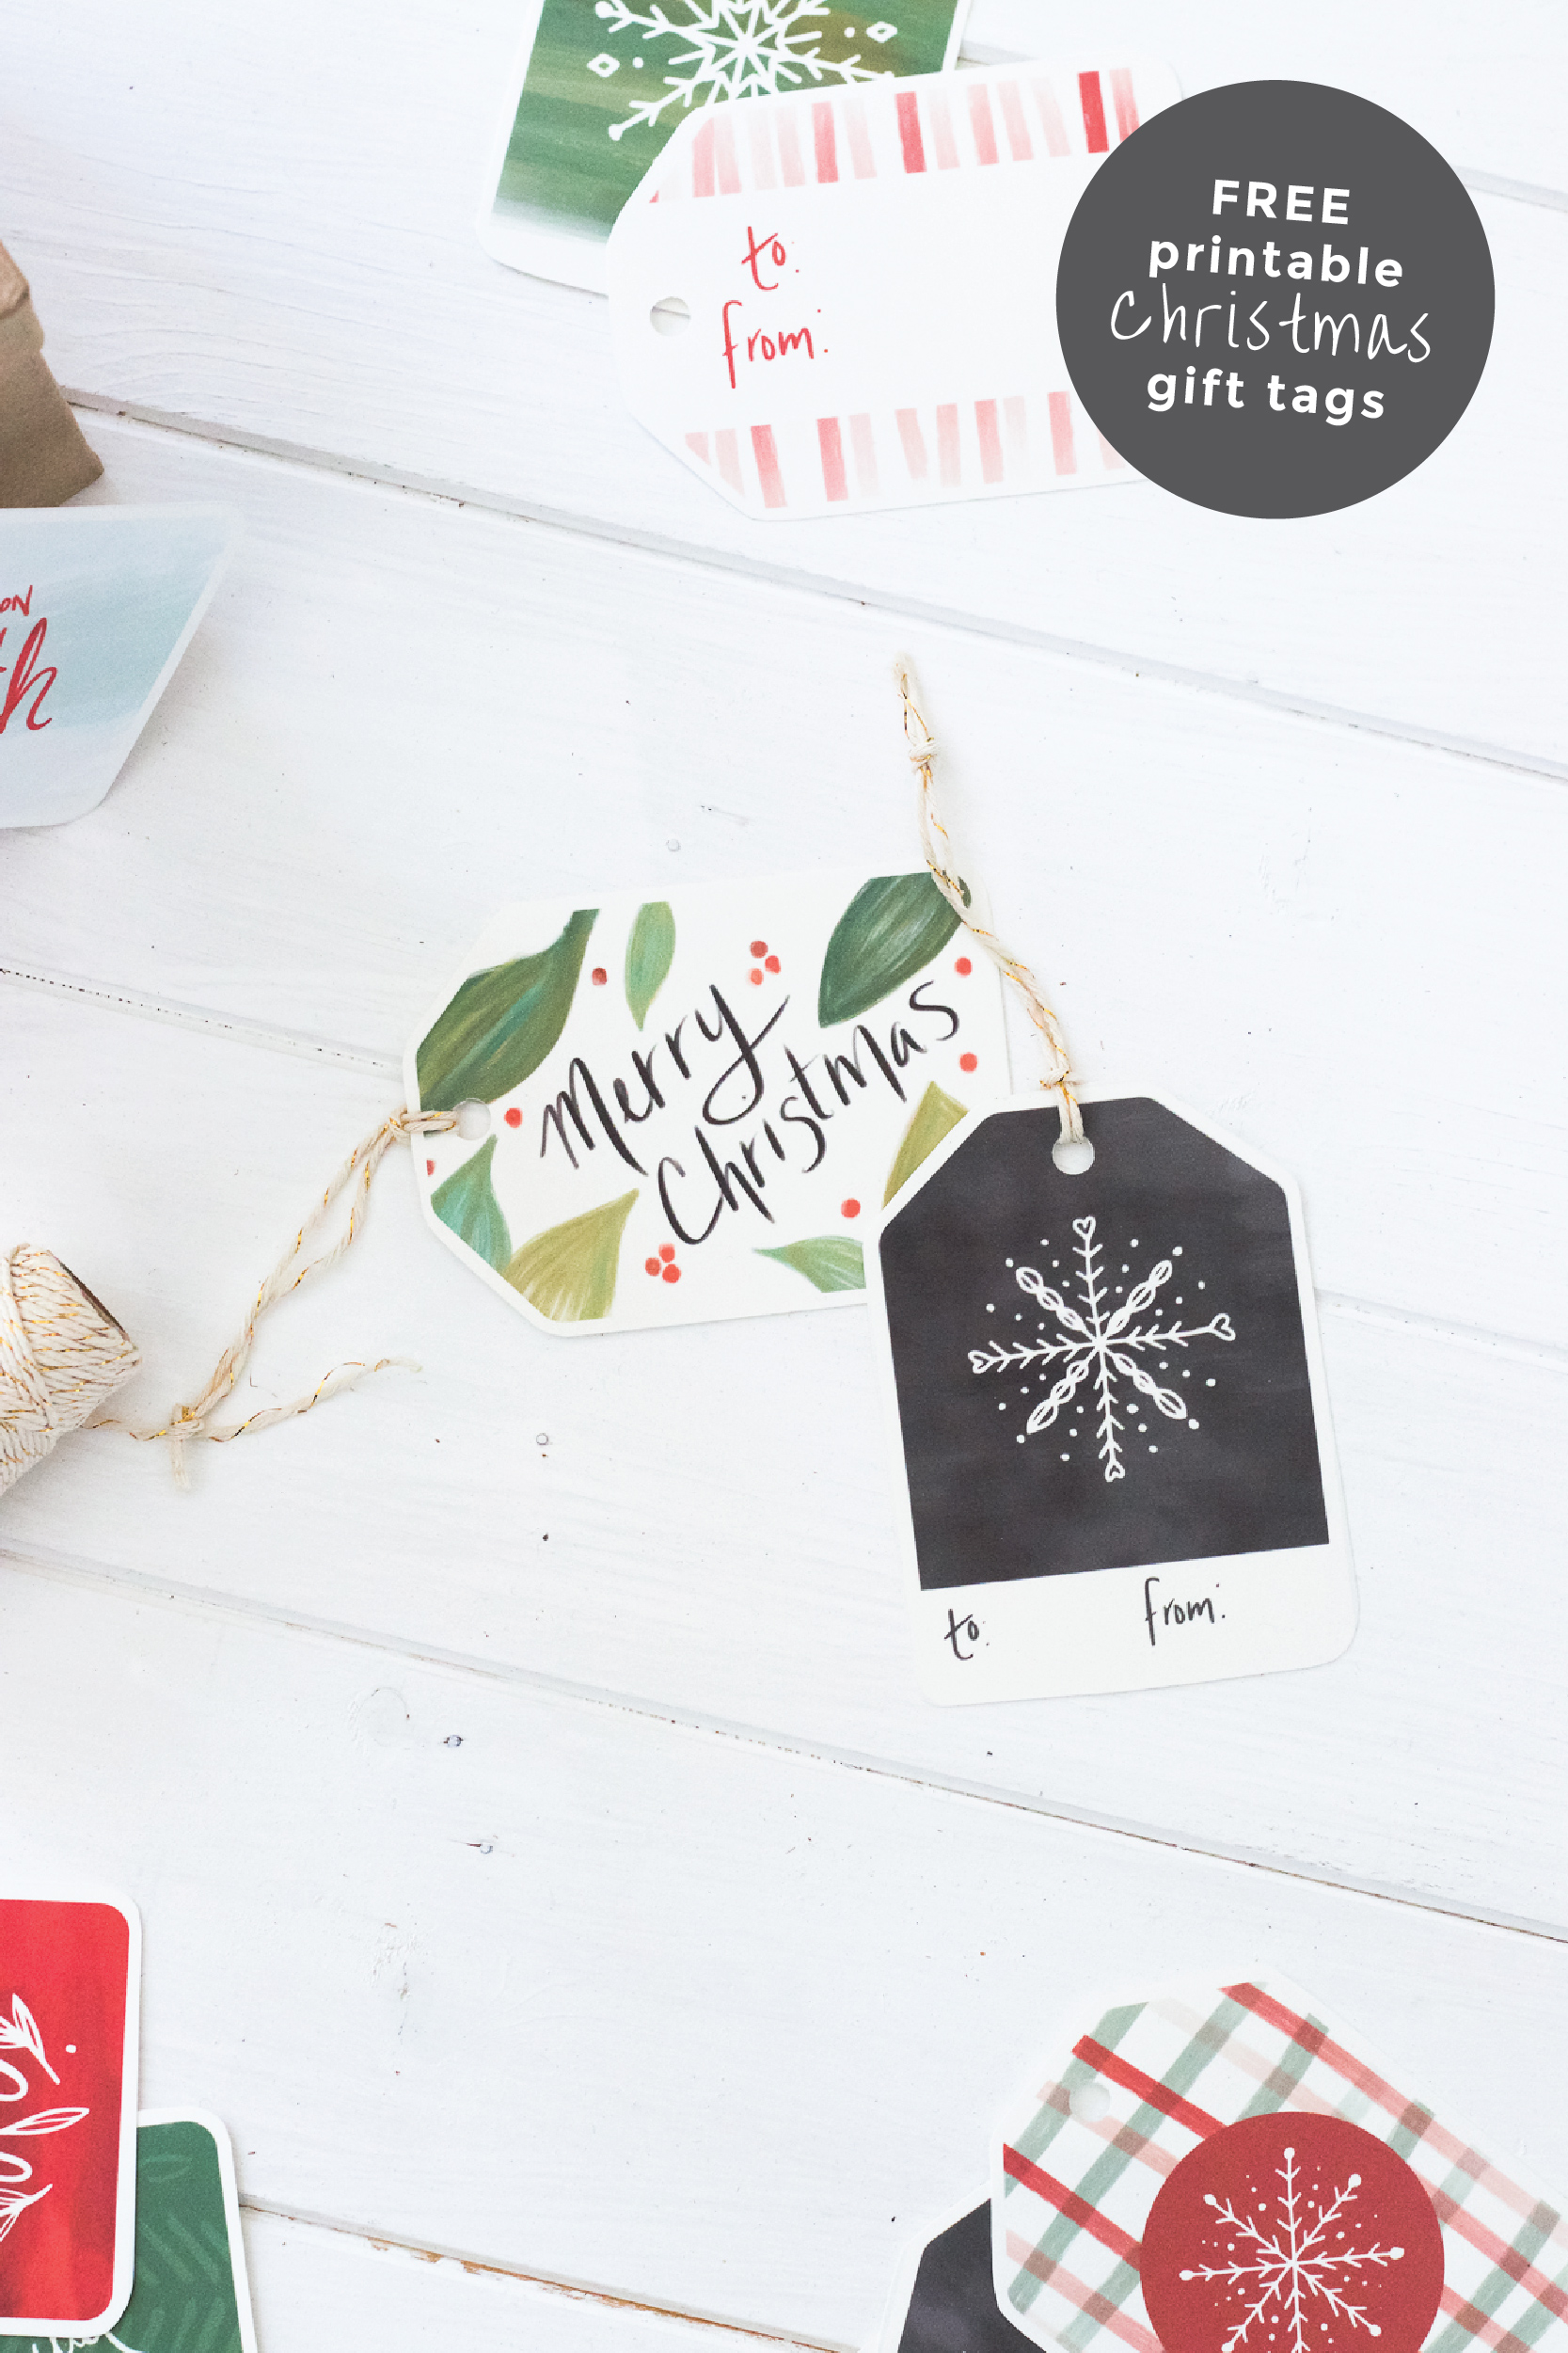 image regarding Free Printable Gift Tags called Absolutely free Printable Xmas Reward Tags for Eye-catching Present